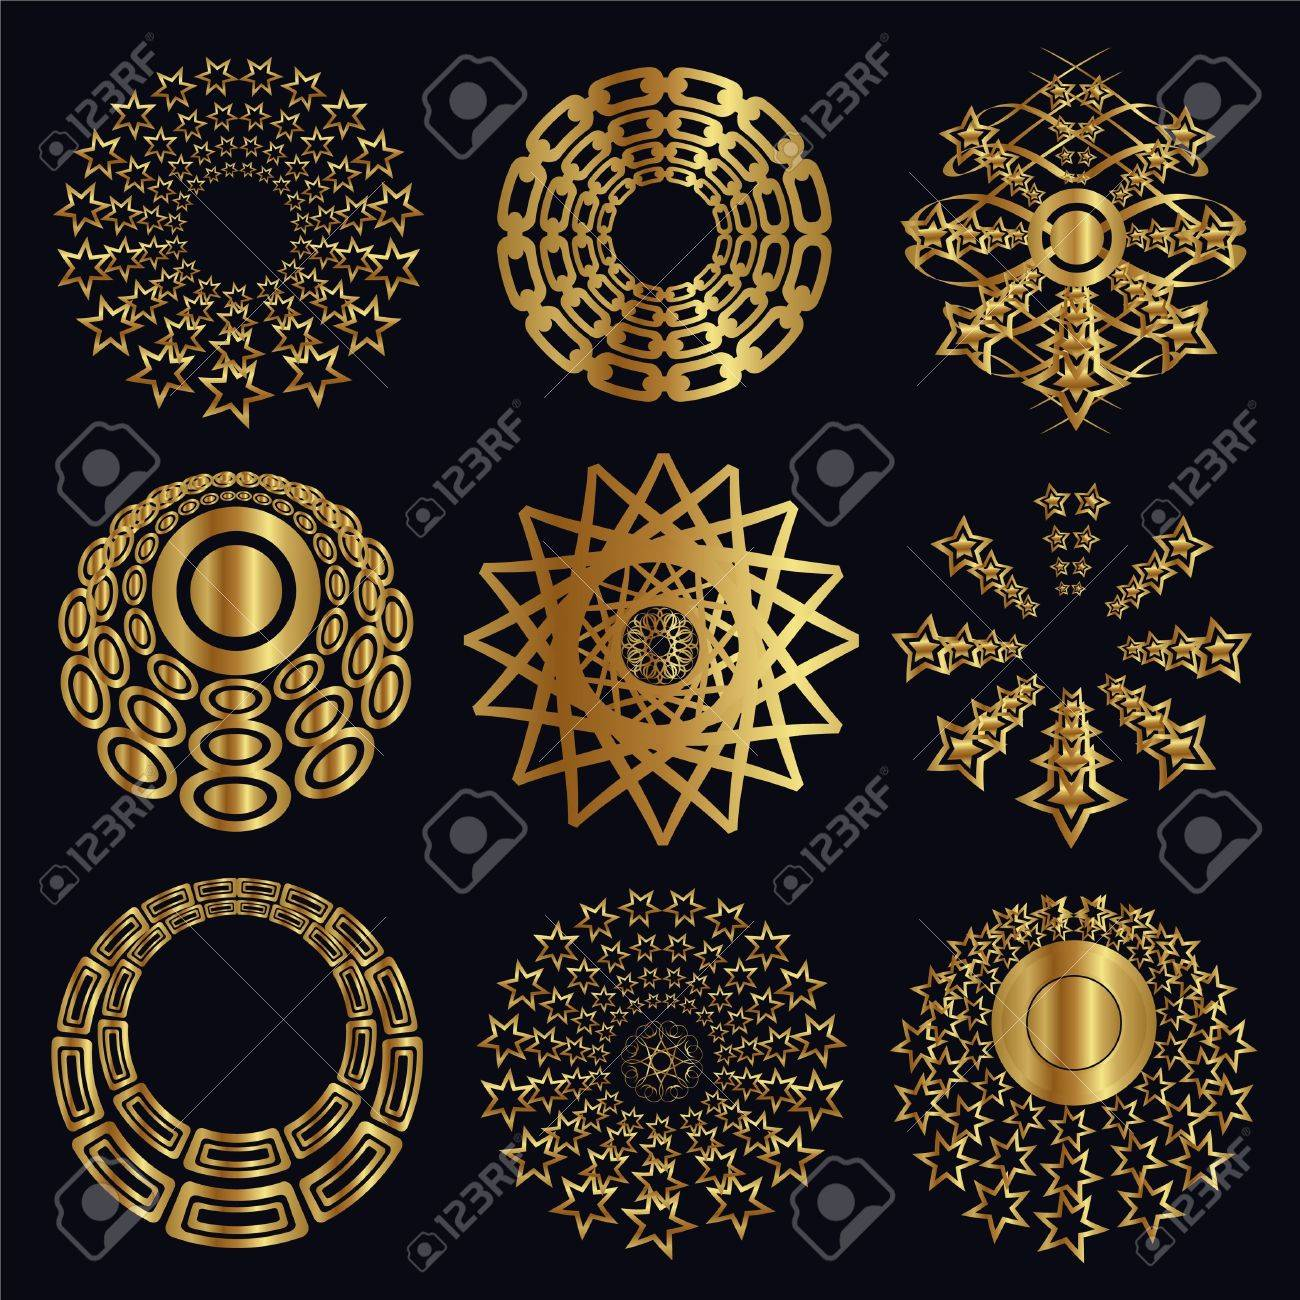 Design and caligraphic elements, gold ornaments for page decoration Stock Vector - 9507149